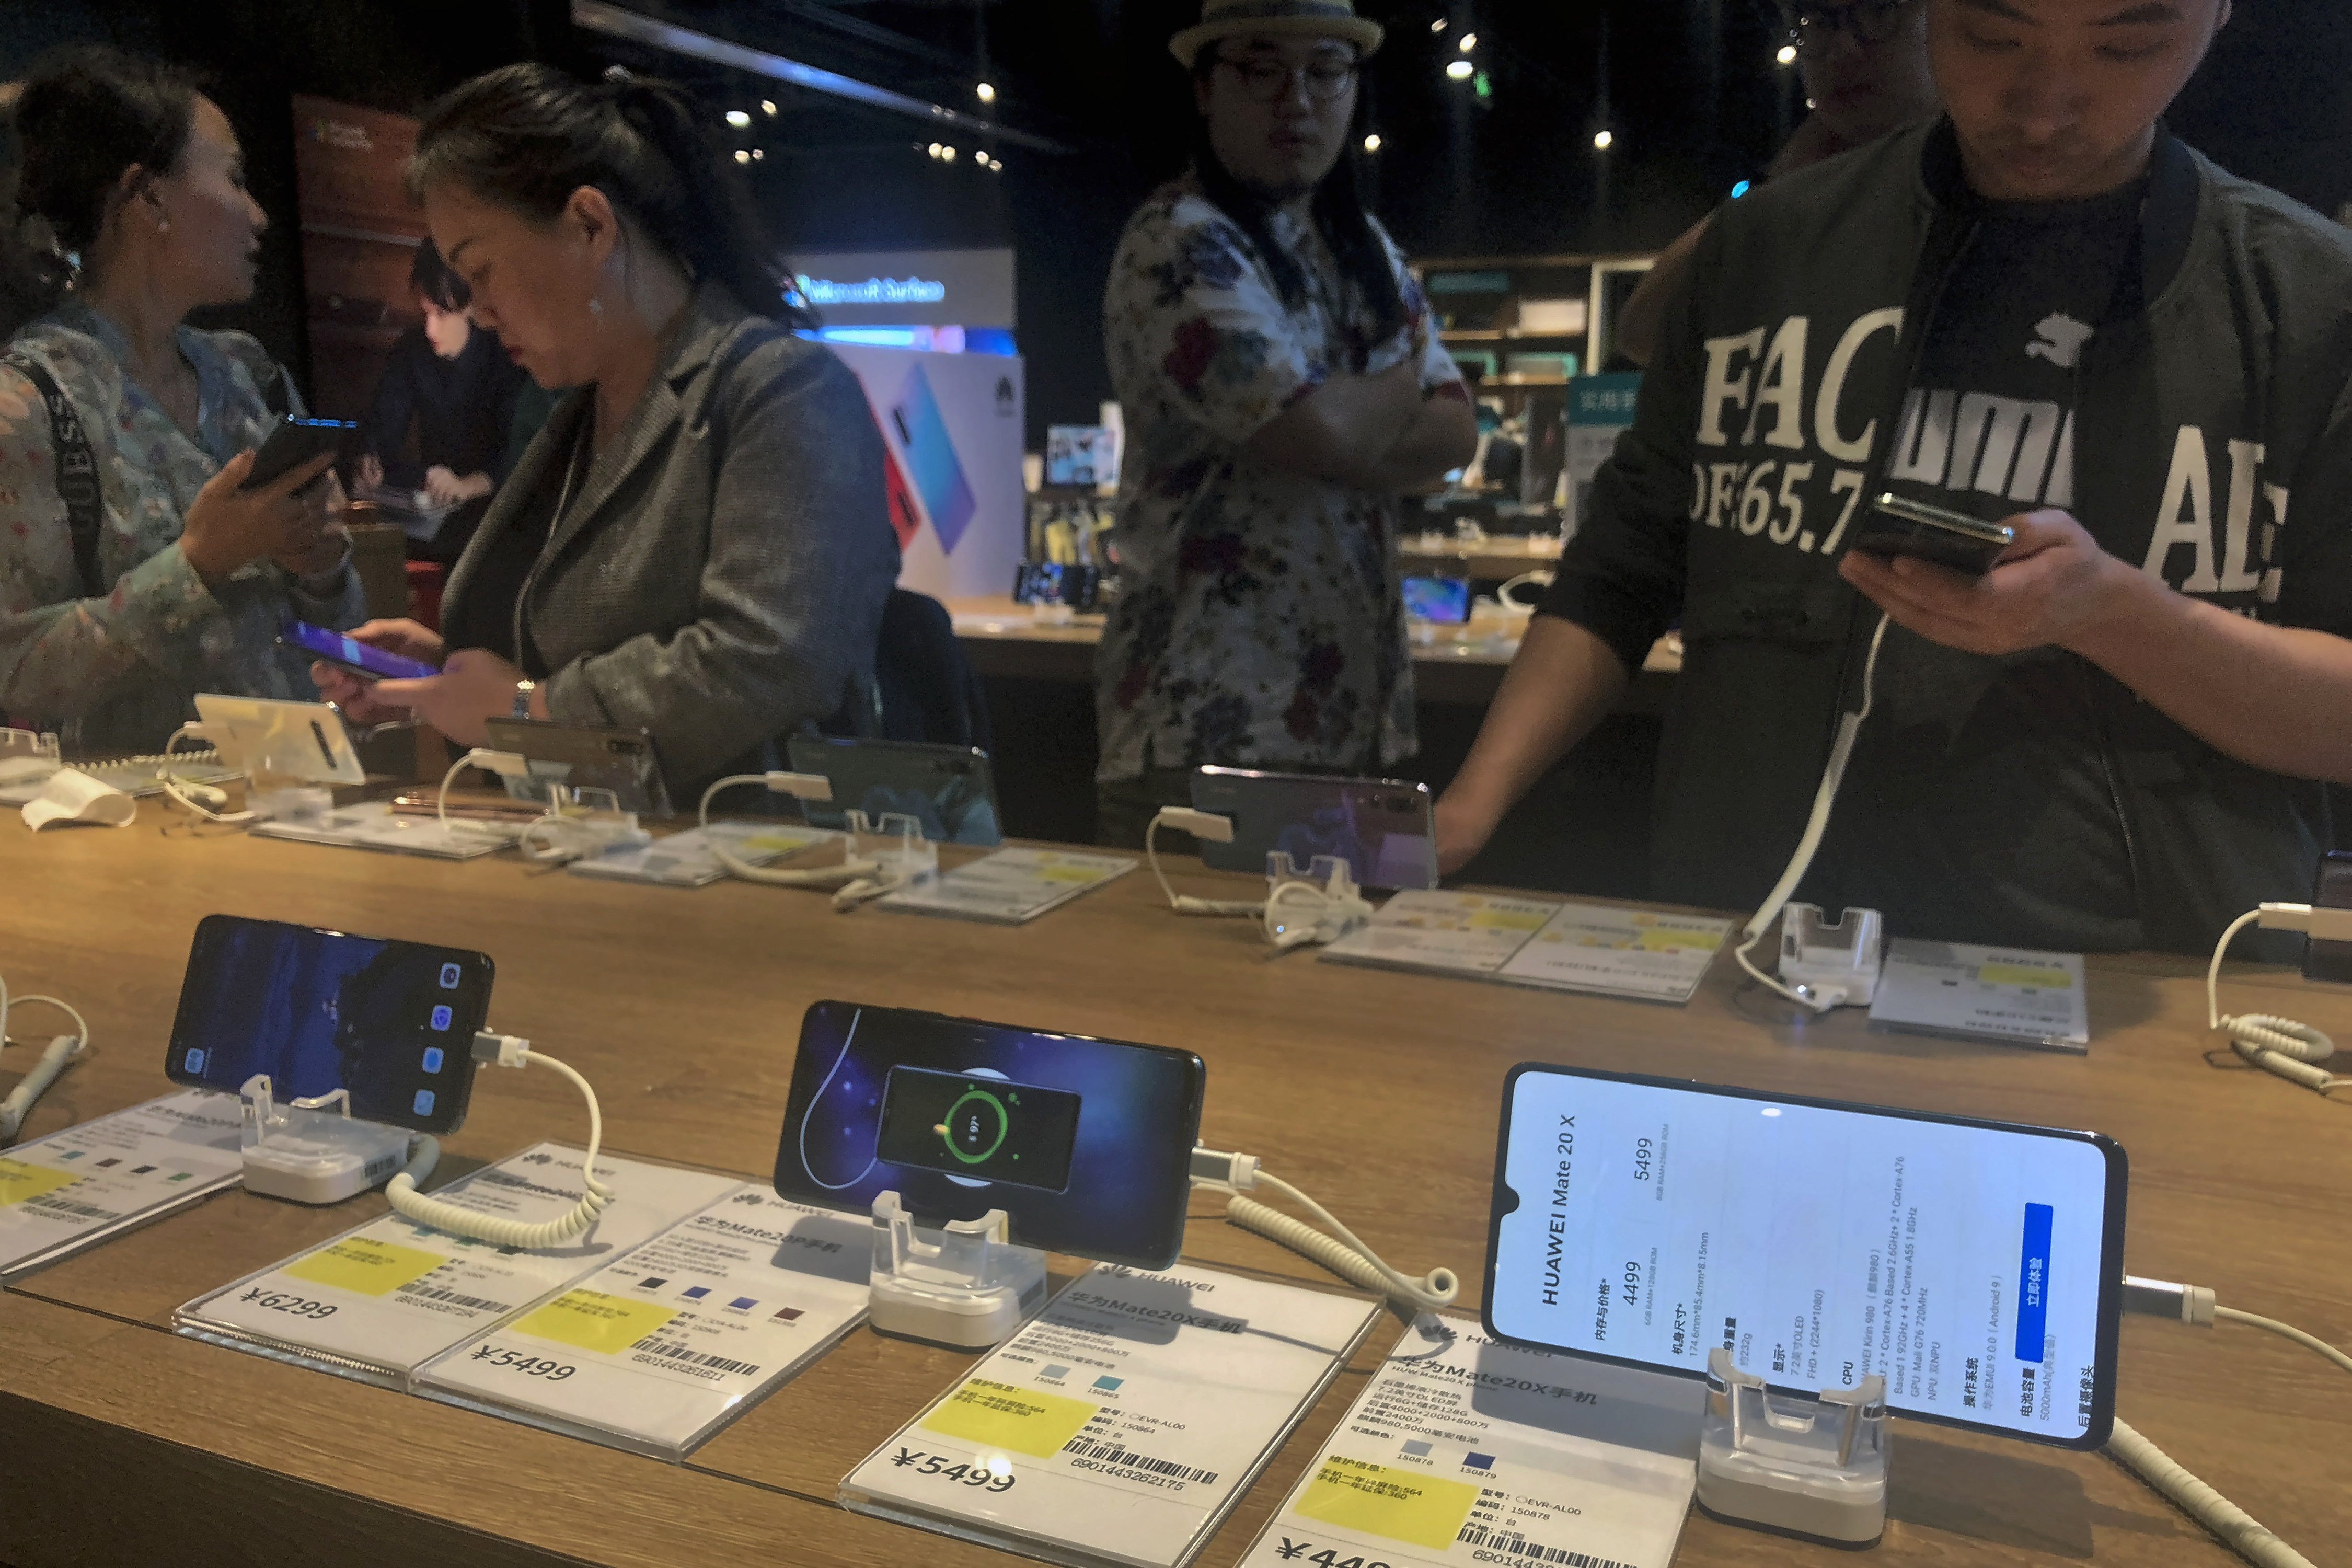 People try out Huawei smartphone models on display at an electronic store in Beijing, May 20, 2019.